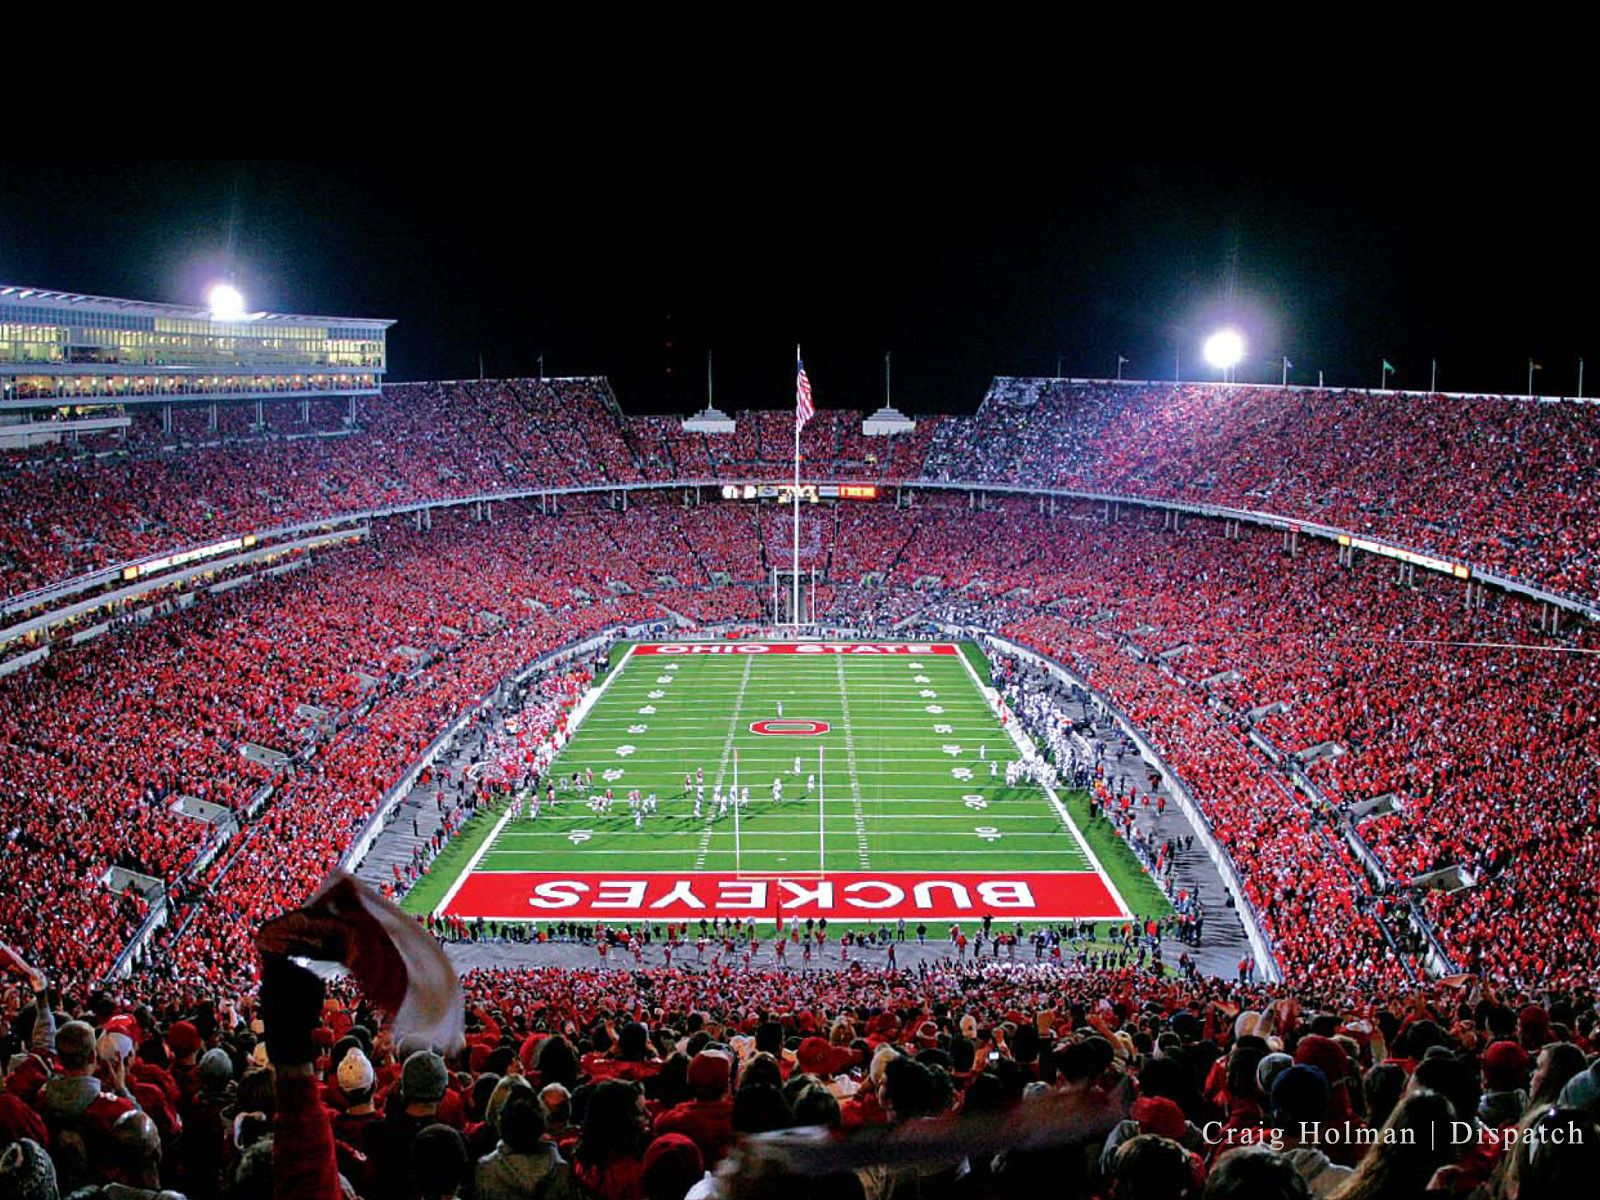 Osu Desktop Wallpaper Ohio State Football Wallpaper Ohio State Stadium Ohio State Wallpaper Ohio State Buckeyes